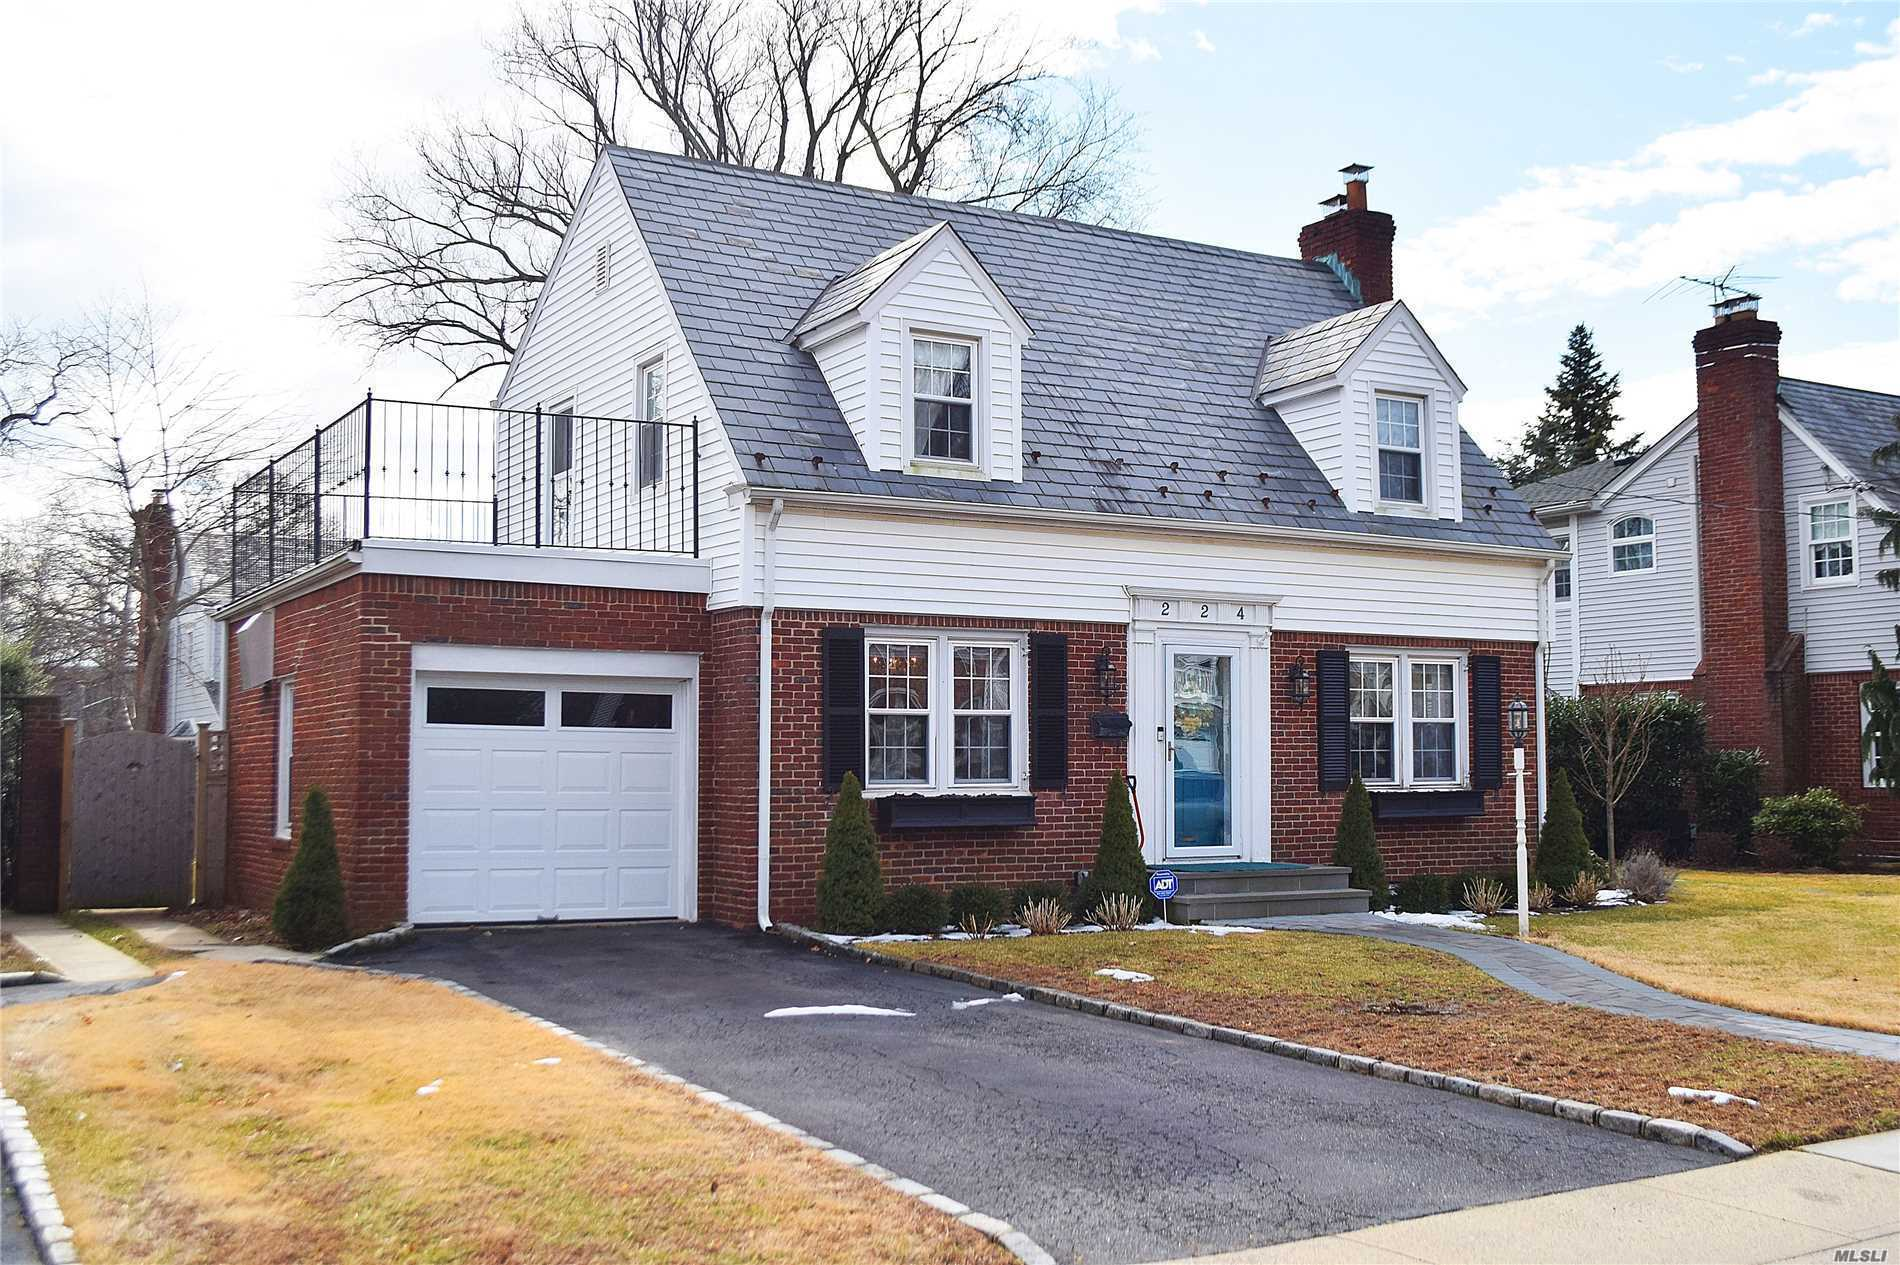 Beautiful Center Entrance Colonial Located In Malverne Park. This Home Boasts A Living Room With A Wood Burning Fireplace And A Chef's Kitchen With High End Appliances And The Den Features A Charming Cathedral Tin Ceiling. The House Has 3 Bedrooms And 2 Full Baths. Hardwood Floors. Full Basement With High Ceiling, Laundry Area. Great Size Property With Rear Paver Patio. Low Taxes!